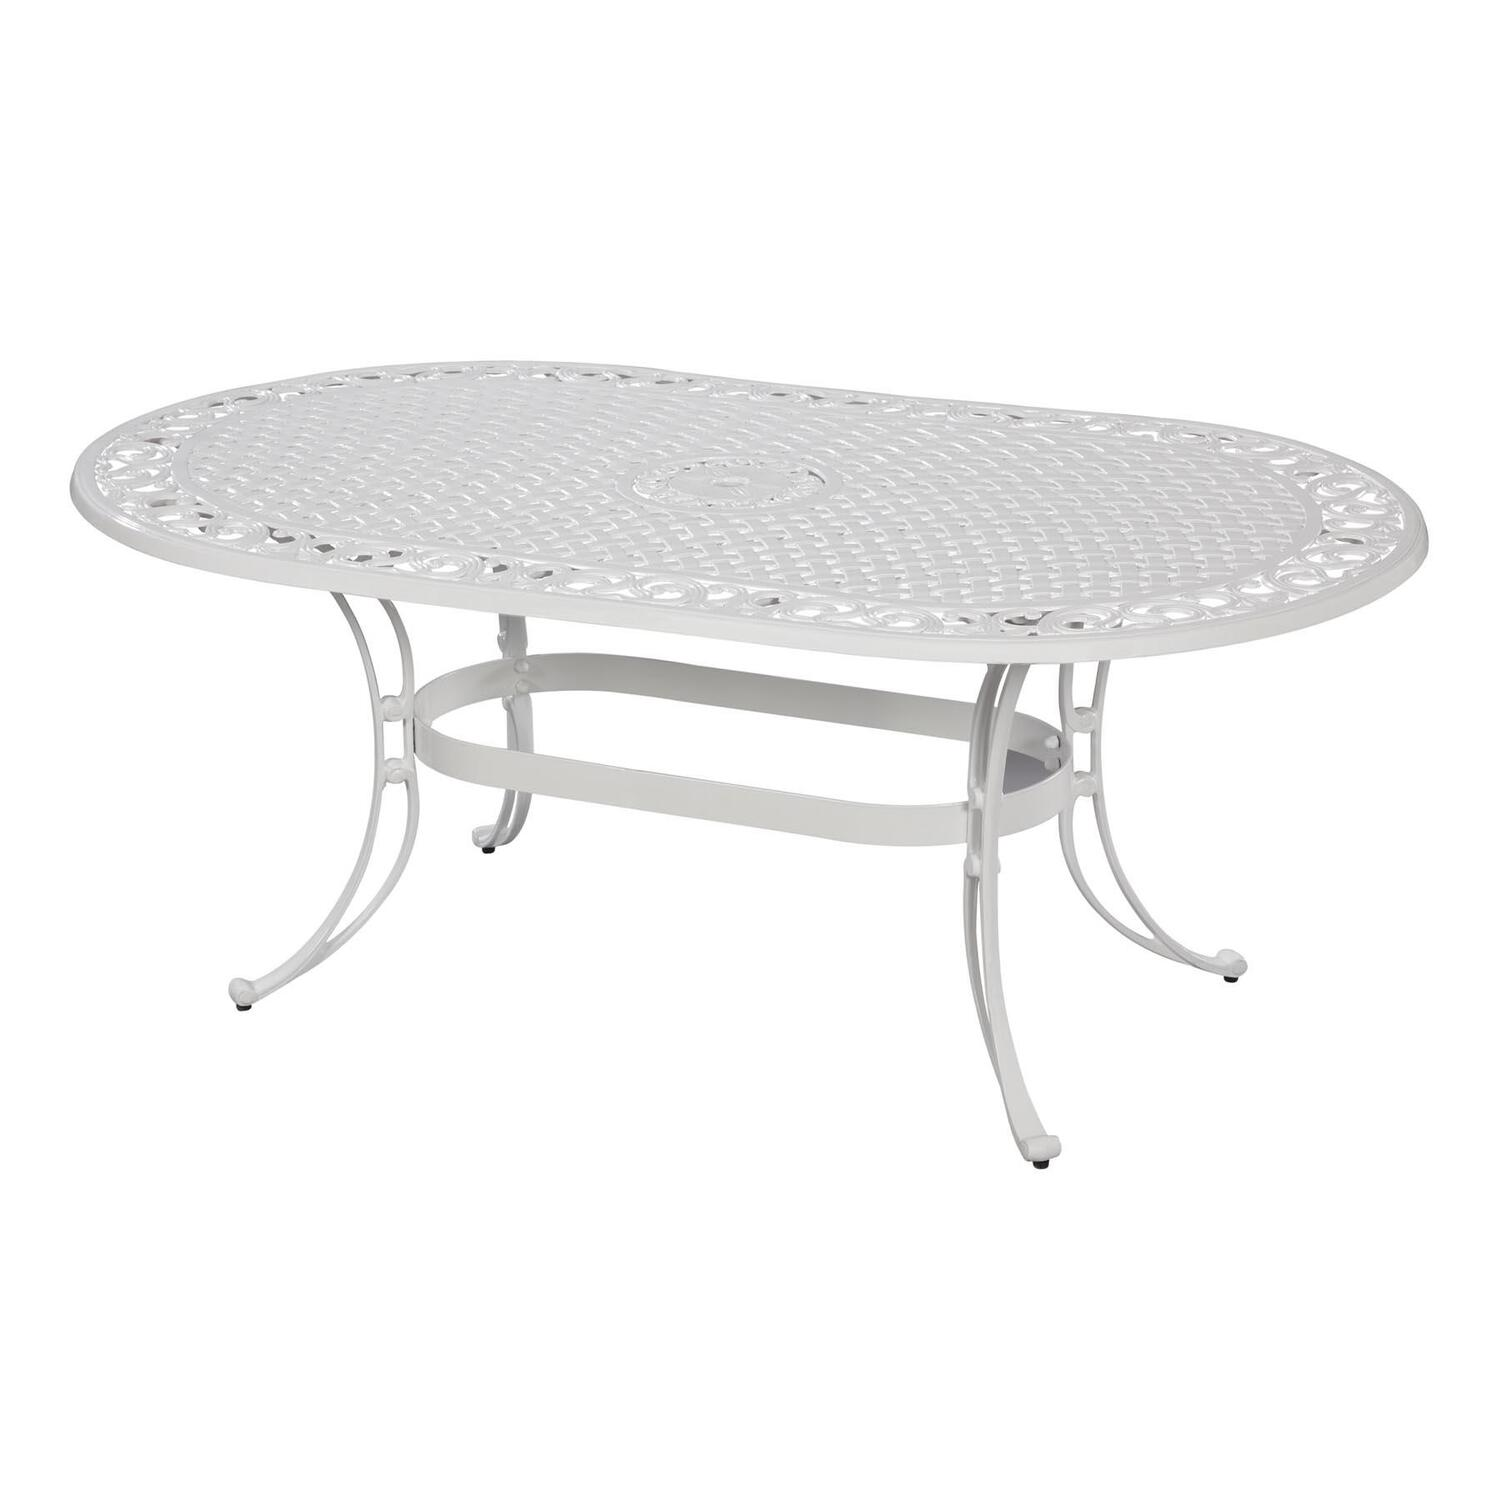 Garden Patio Furniture Accessories Tables Dining Tables Home Styles